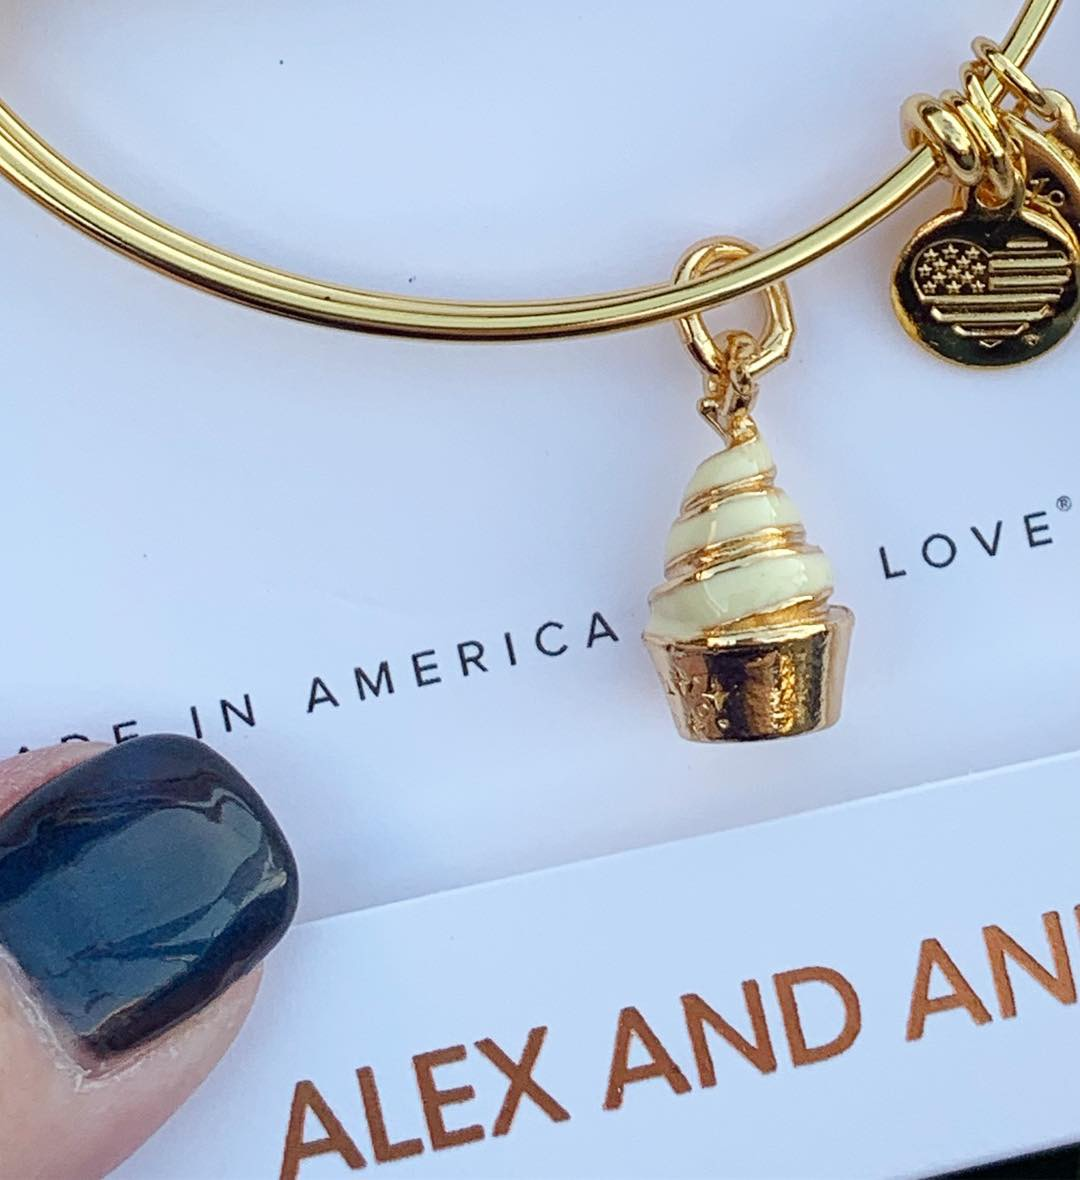 The tastiest D-lish treat Alex and Ani Bracelets have arrived! 3